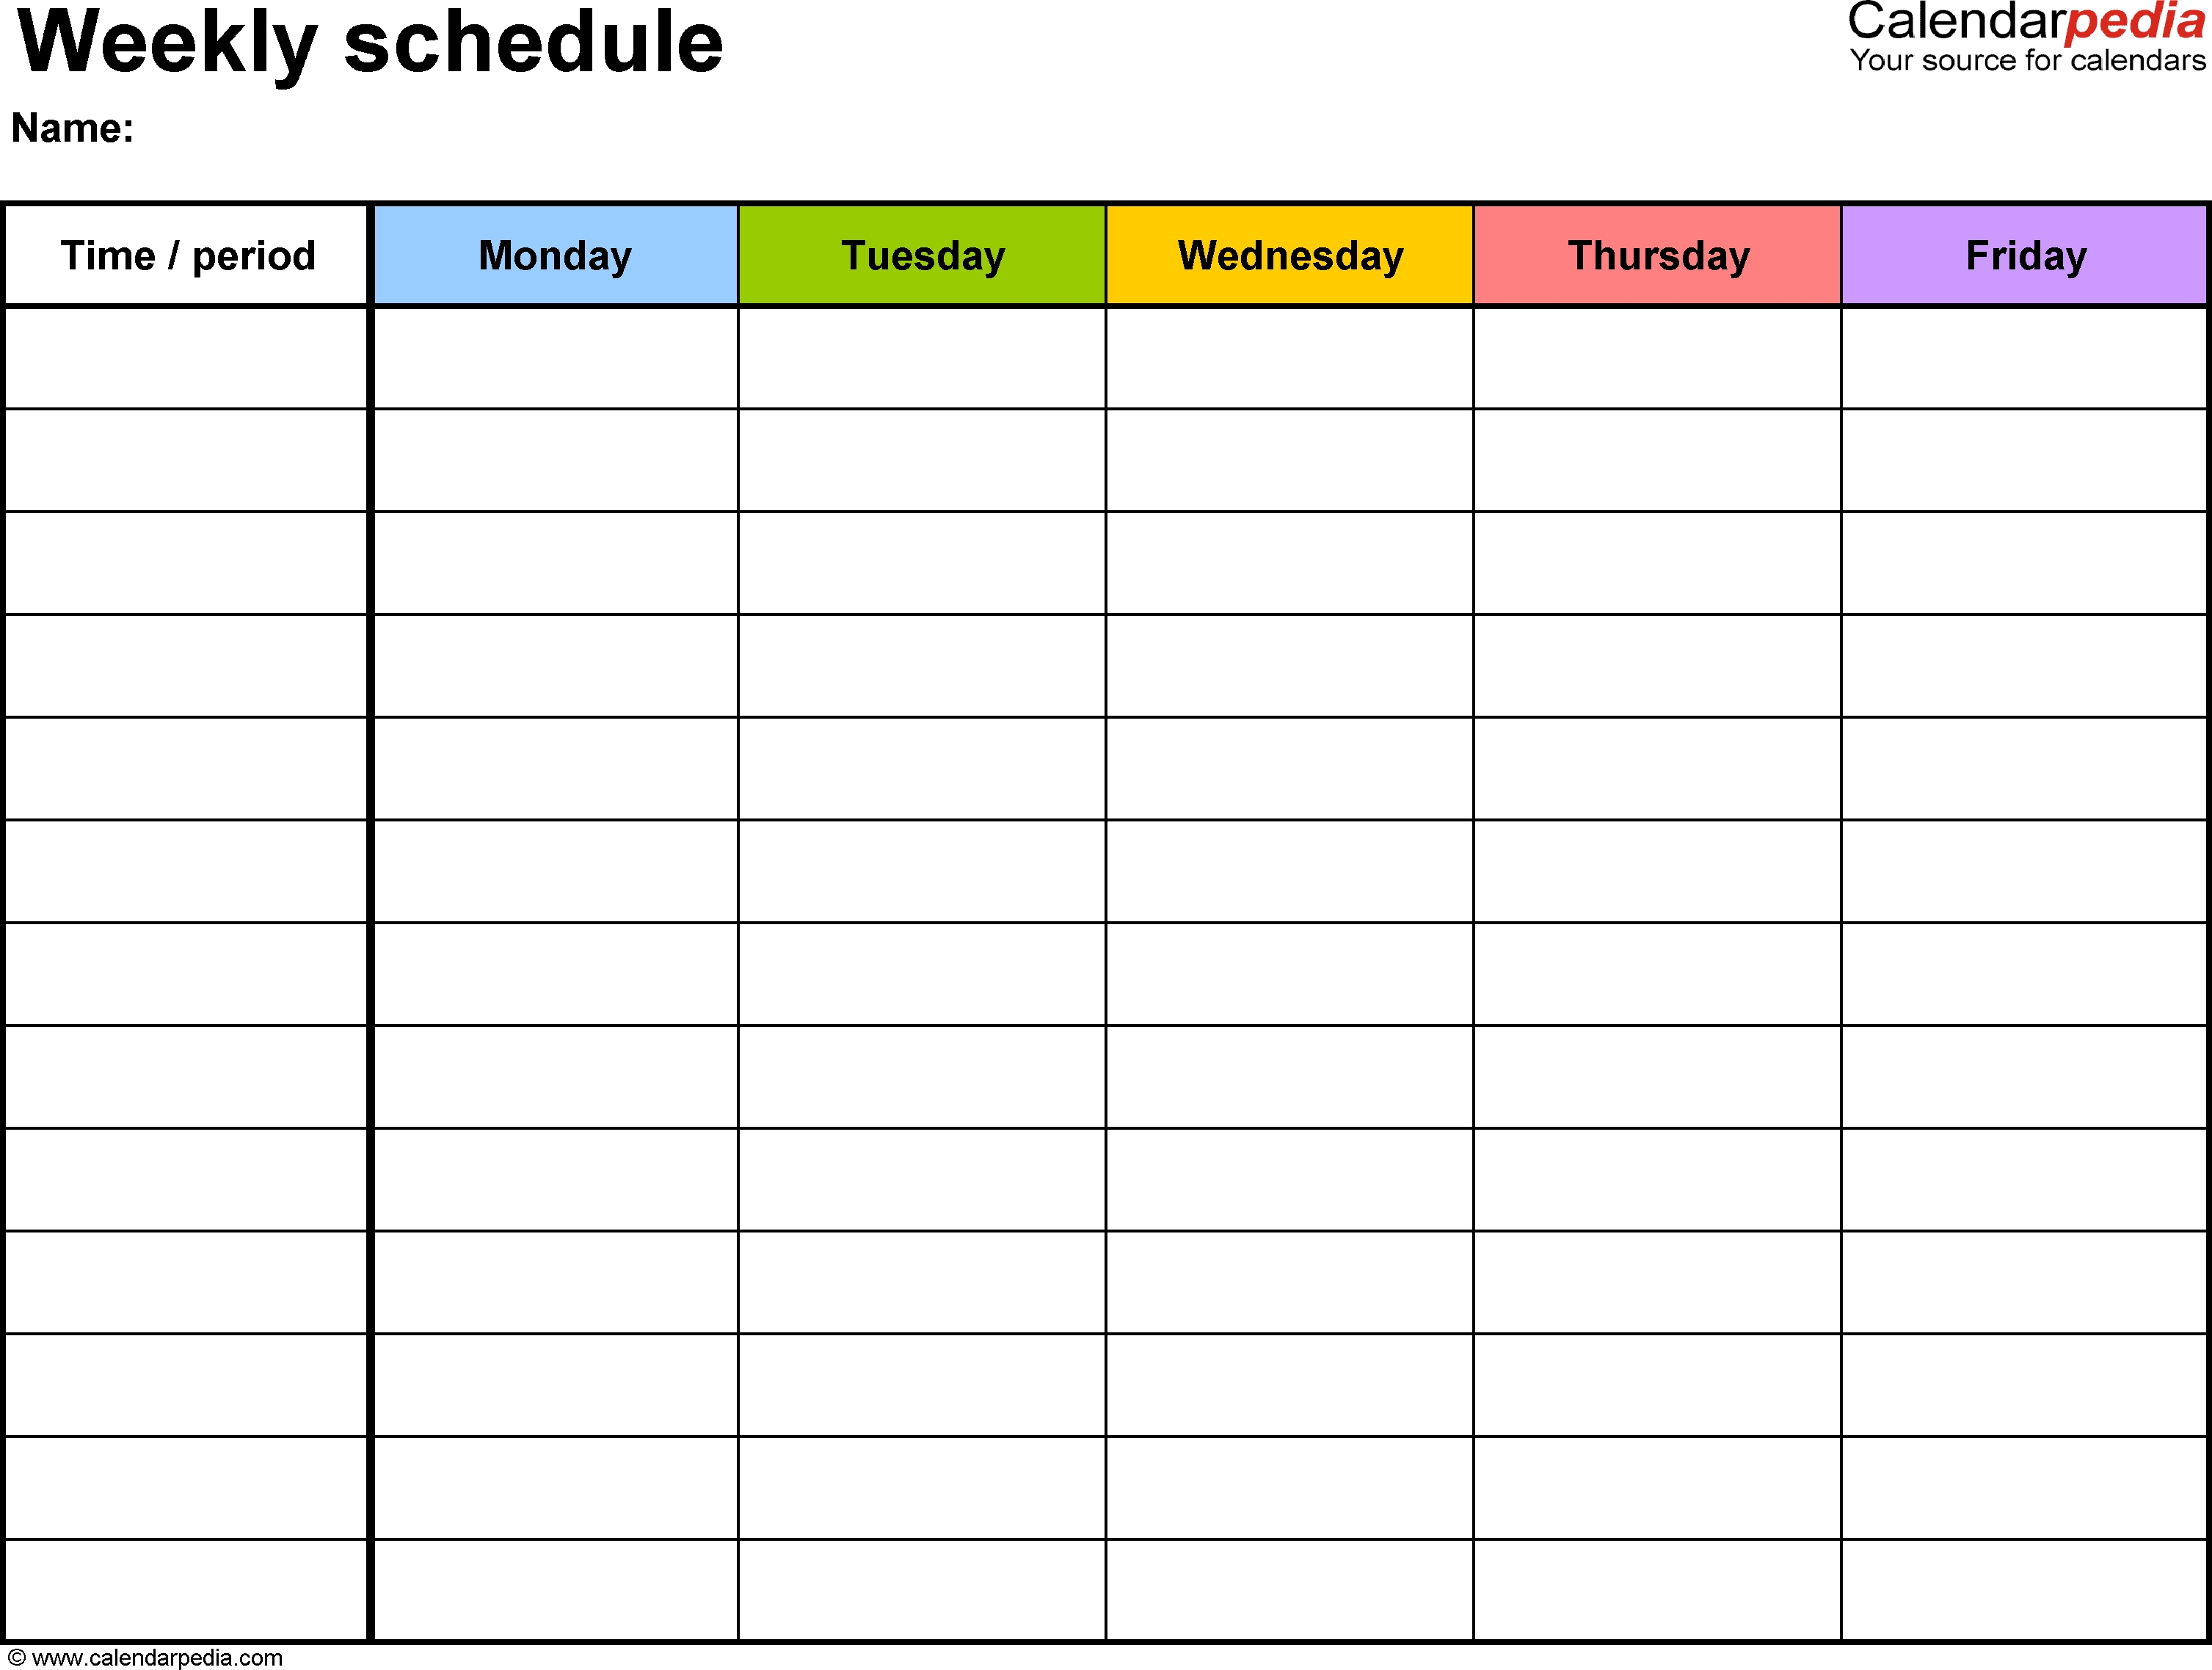 Free Weekly Schedule Templates For Word - 18 Templates pertaining to How To Create A Weekly Calendar